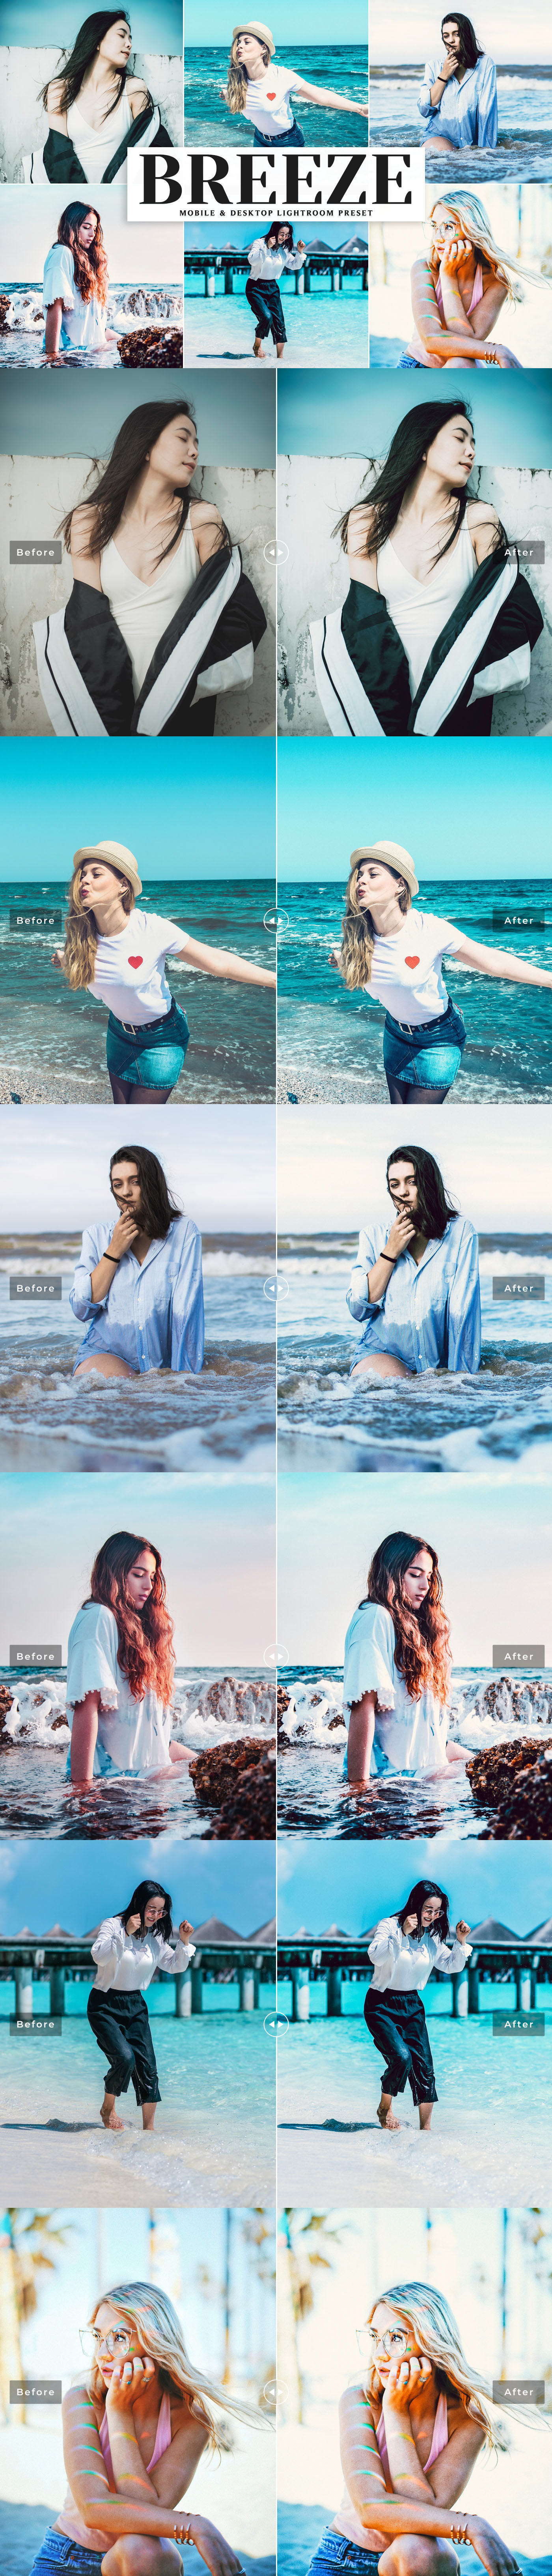 Free Breeze Lightroom Preset that will add bright, soft and clean aesthetic tone.